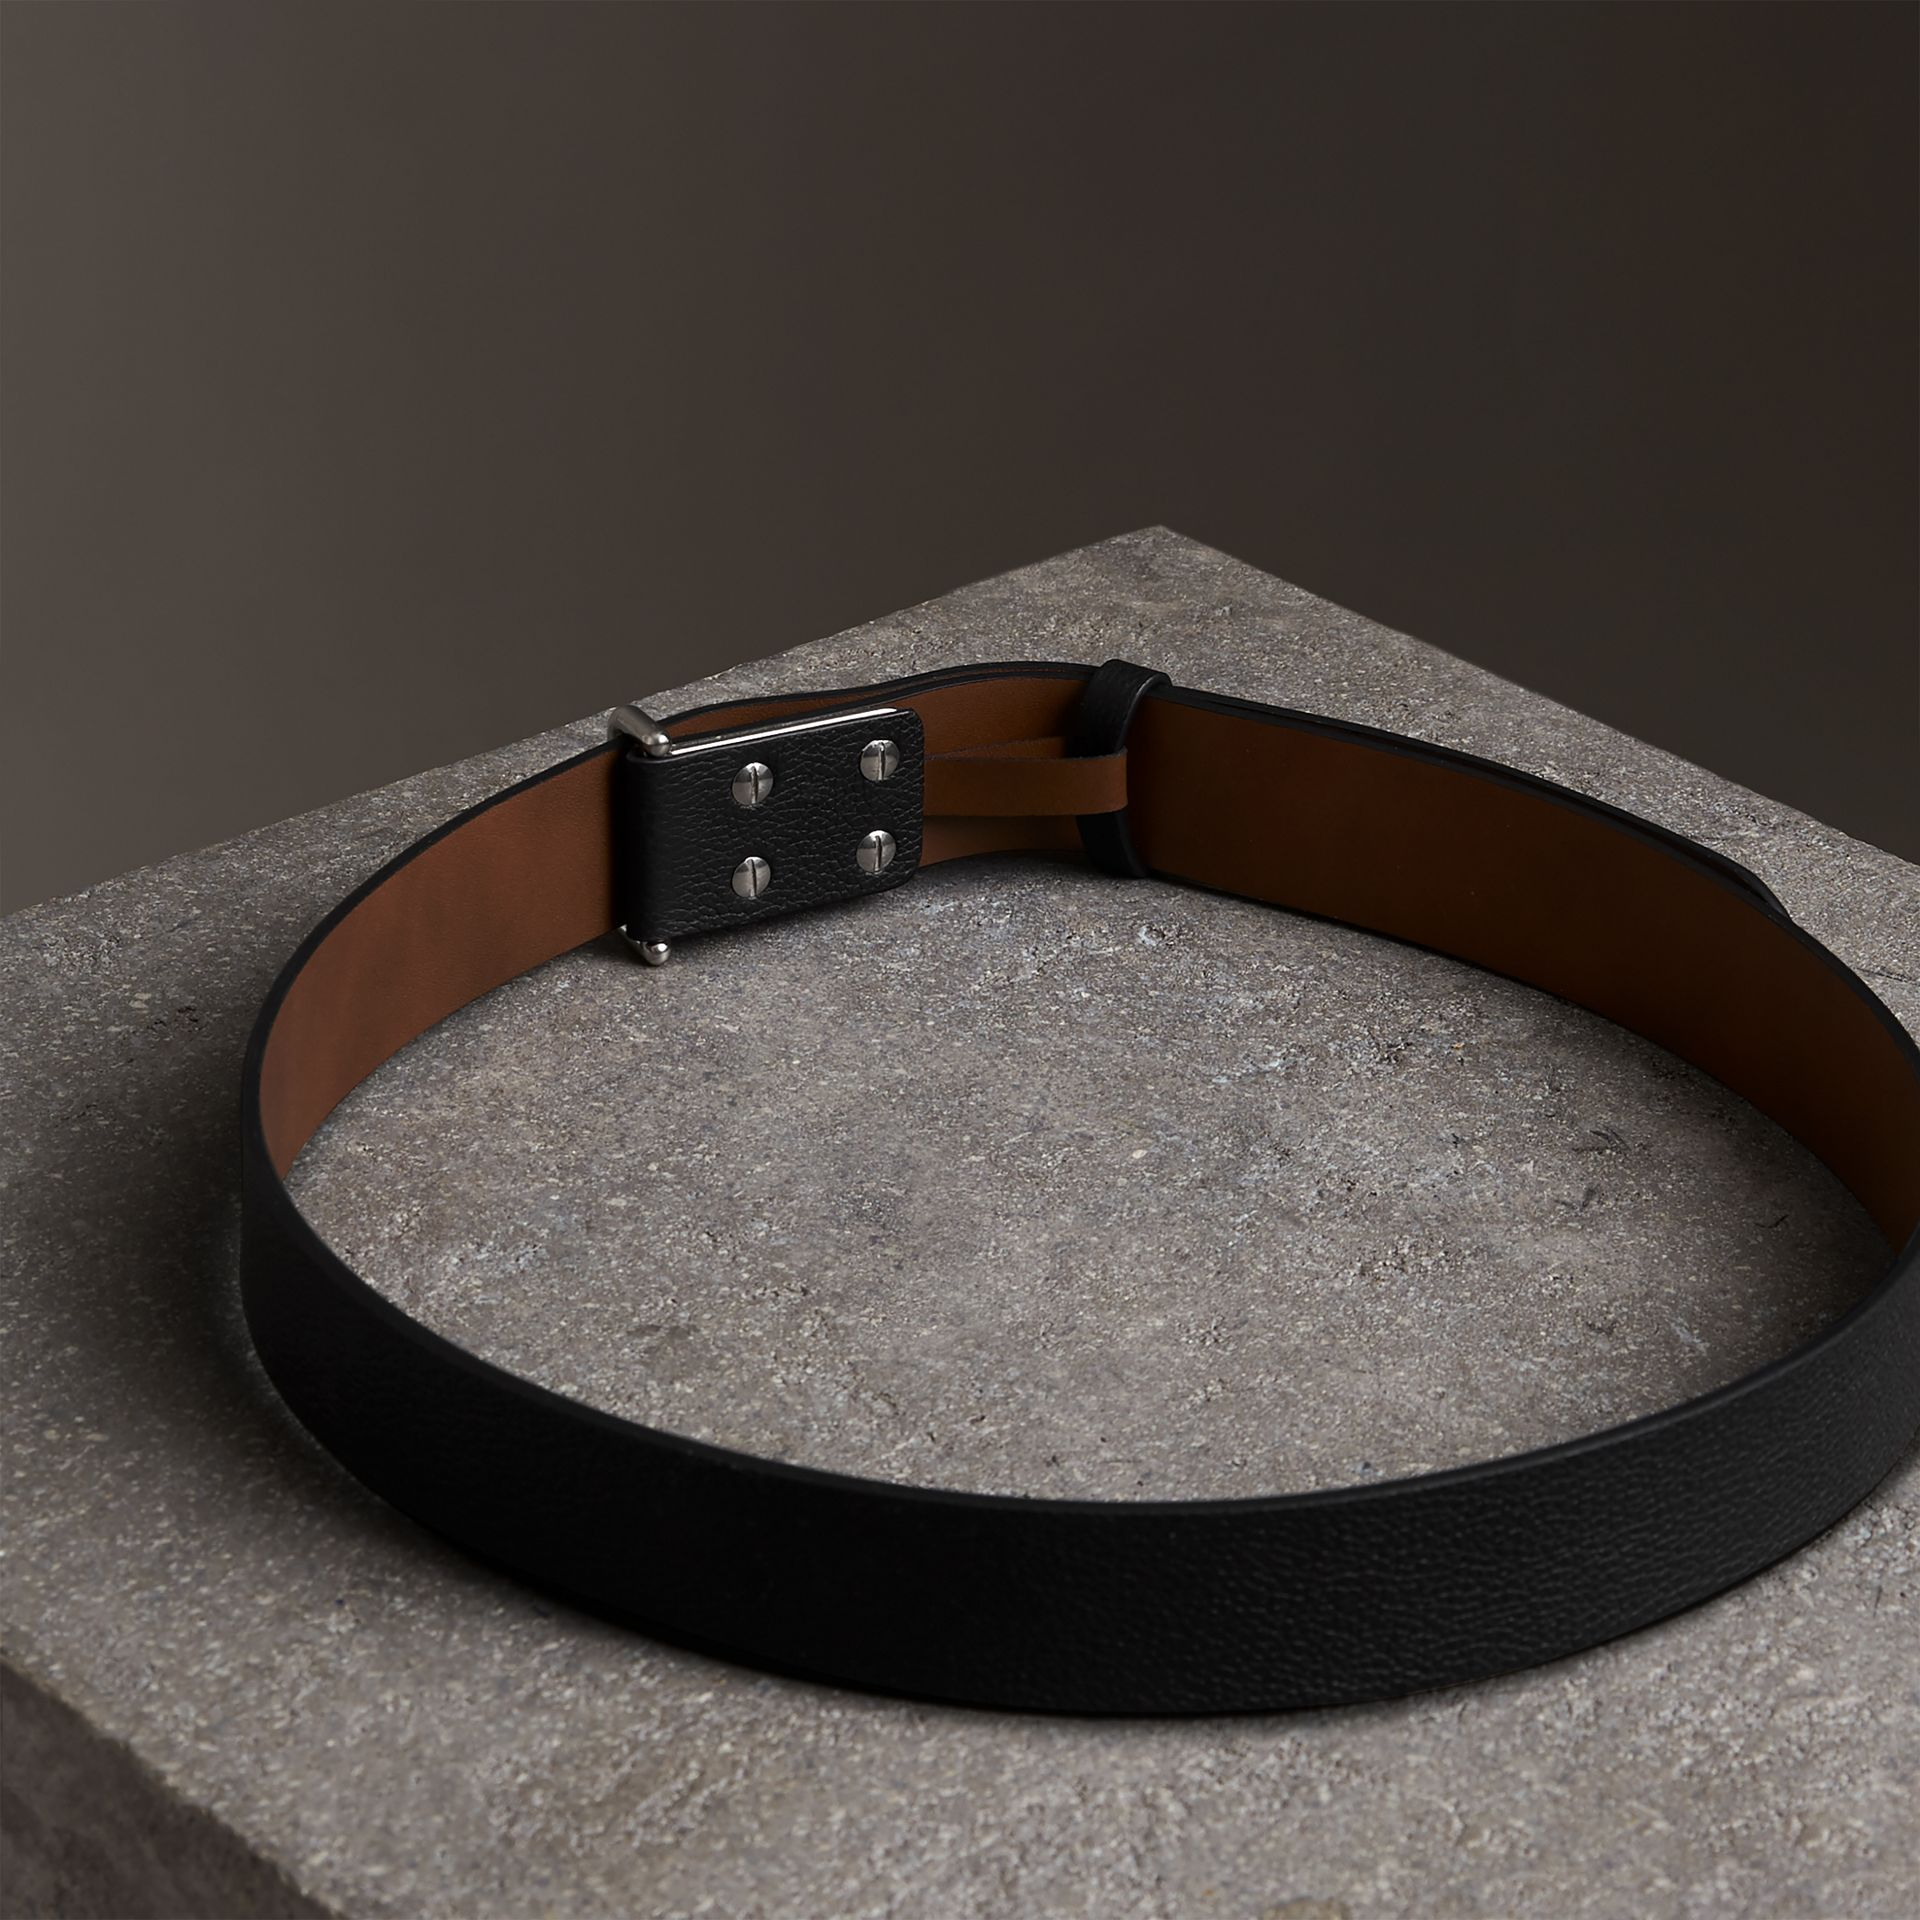 Push-Stud Grainy Leather Belt in Black - Men | Burberry - gallery image 3